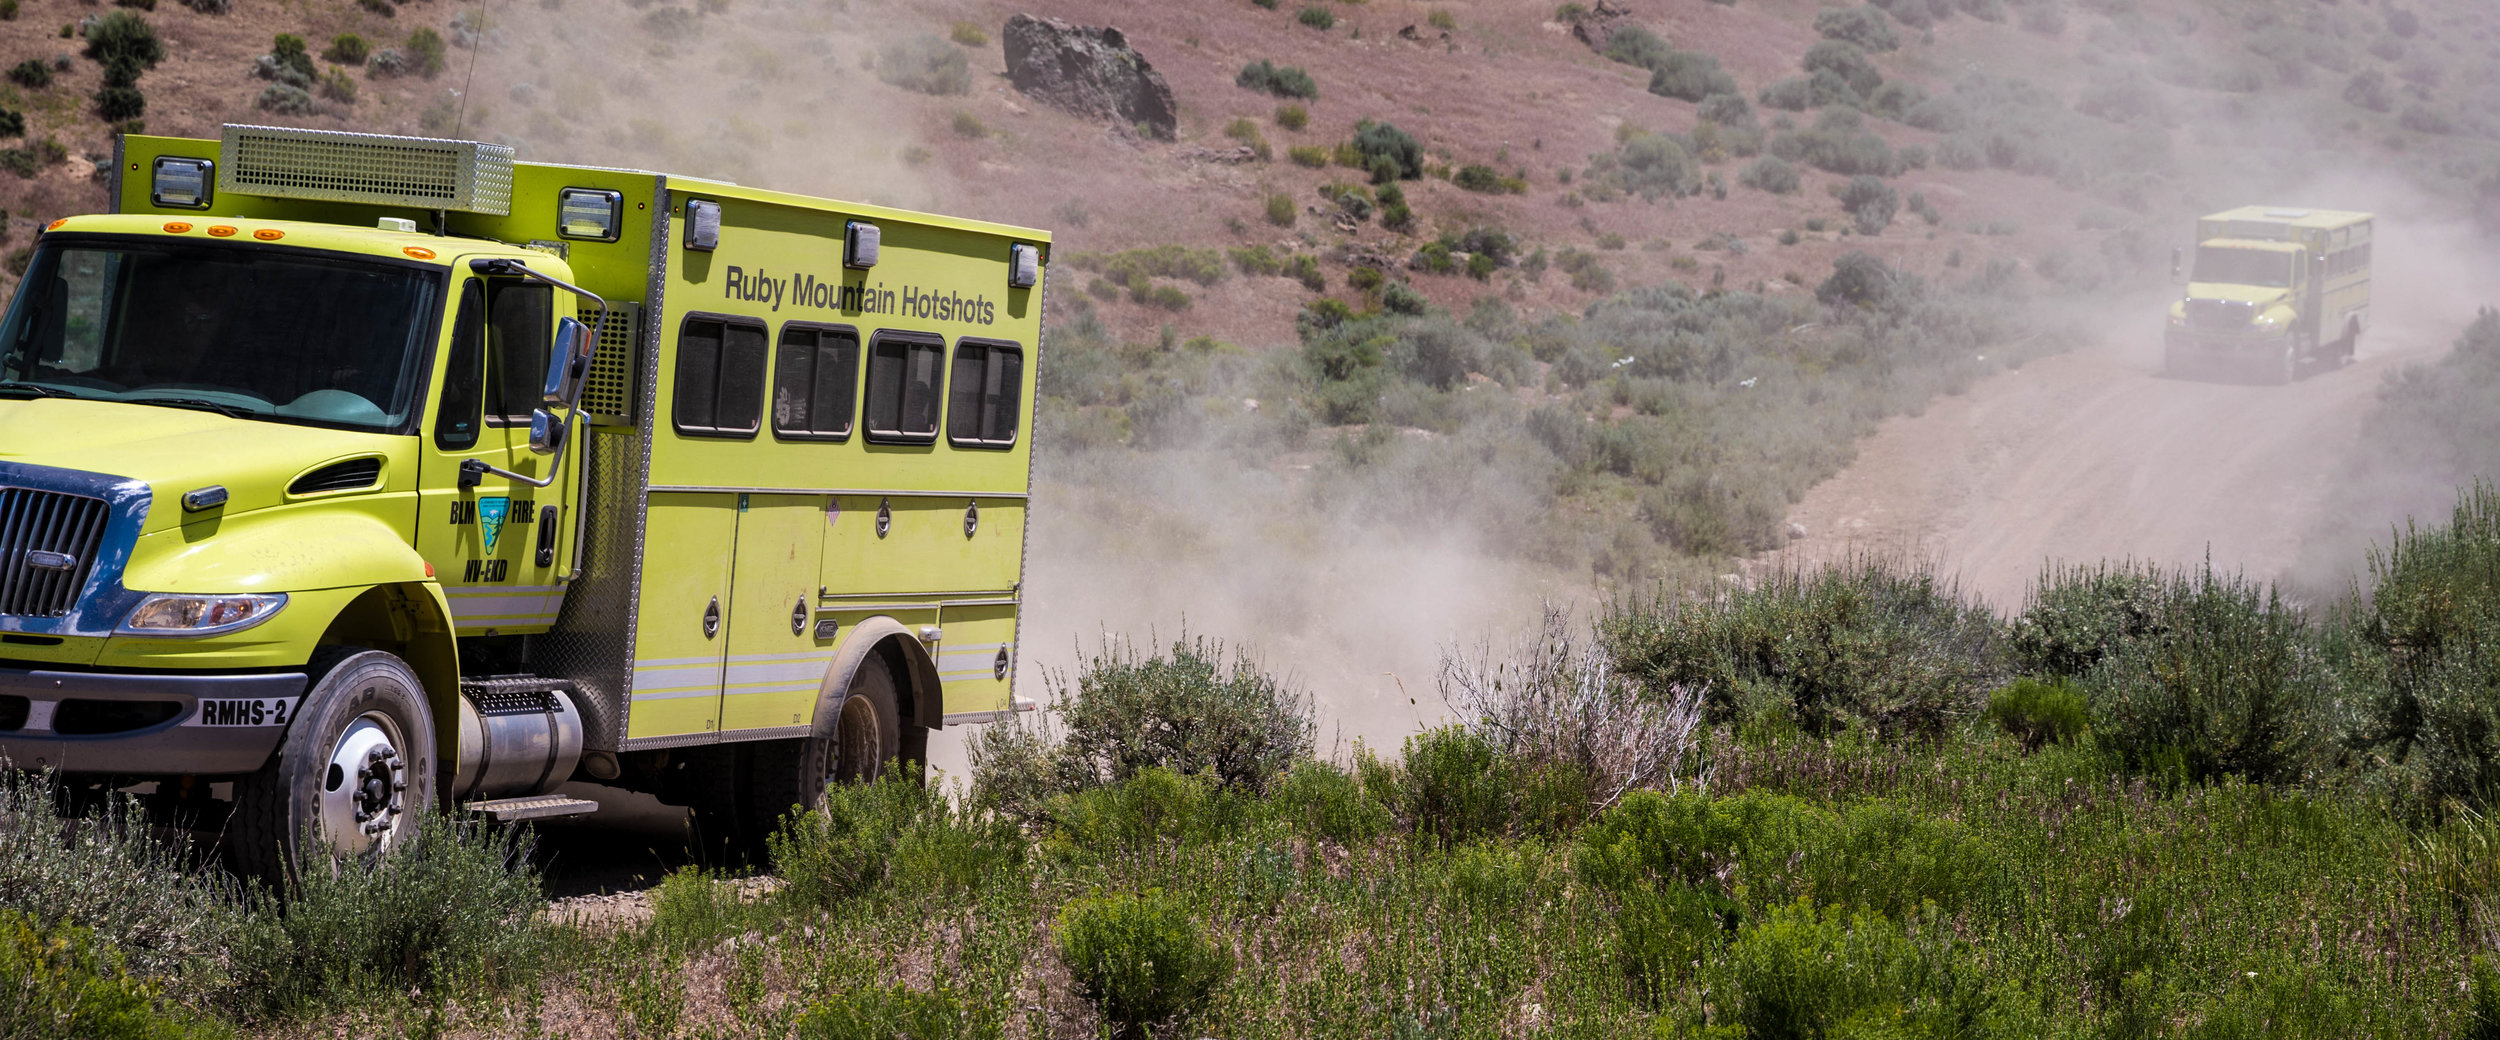 The Ruby Mountain Hotshot crew buggies kick up dust on dirt roads on their way to their next assignment. Photo: Johnny Siren, BLM